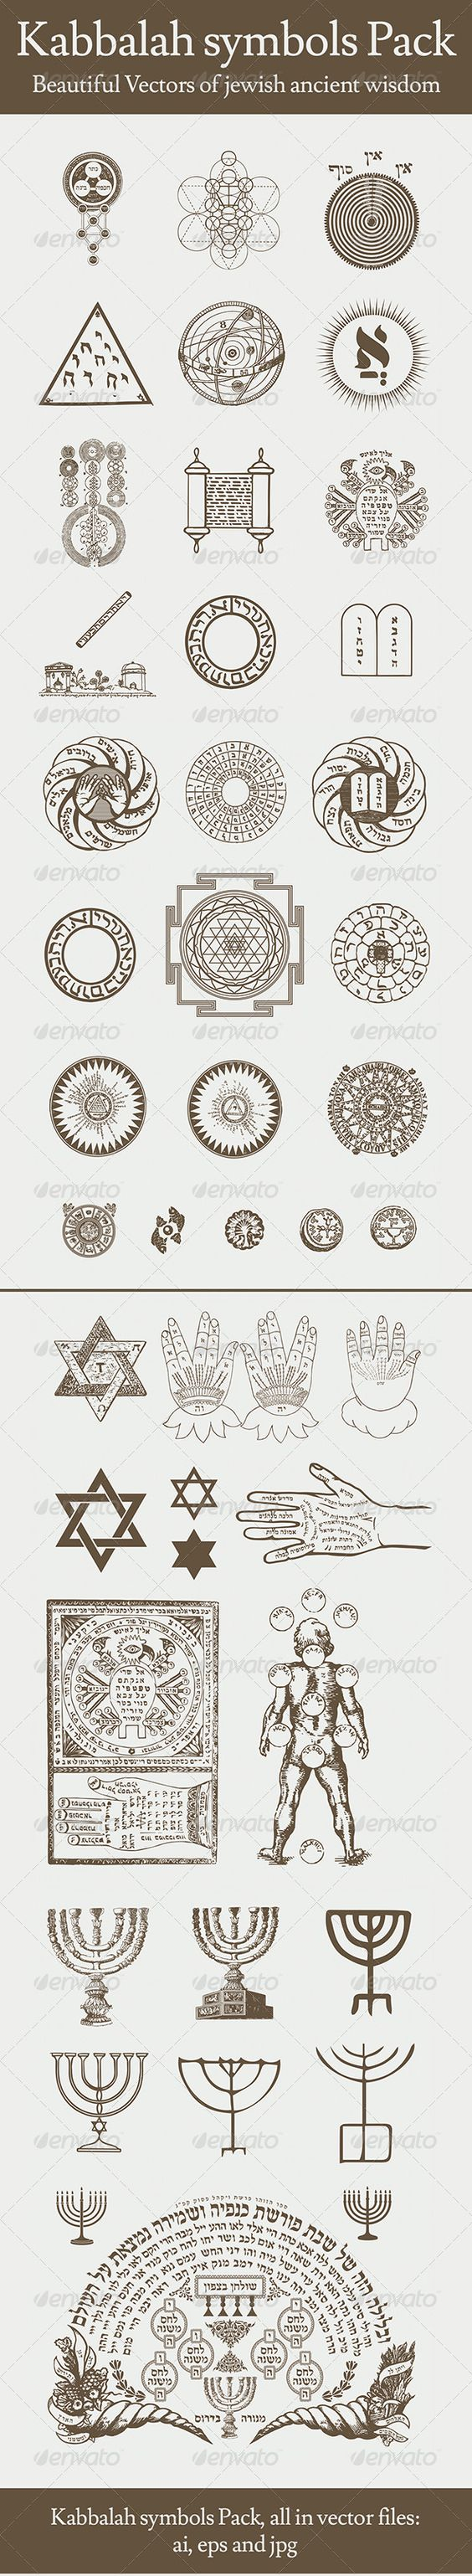 Kabbalah Symbols Pack Egypt Pictures And Occult Symbols